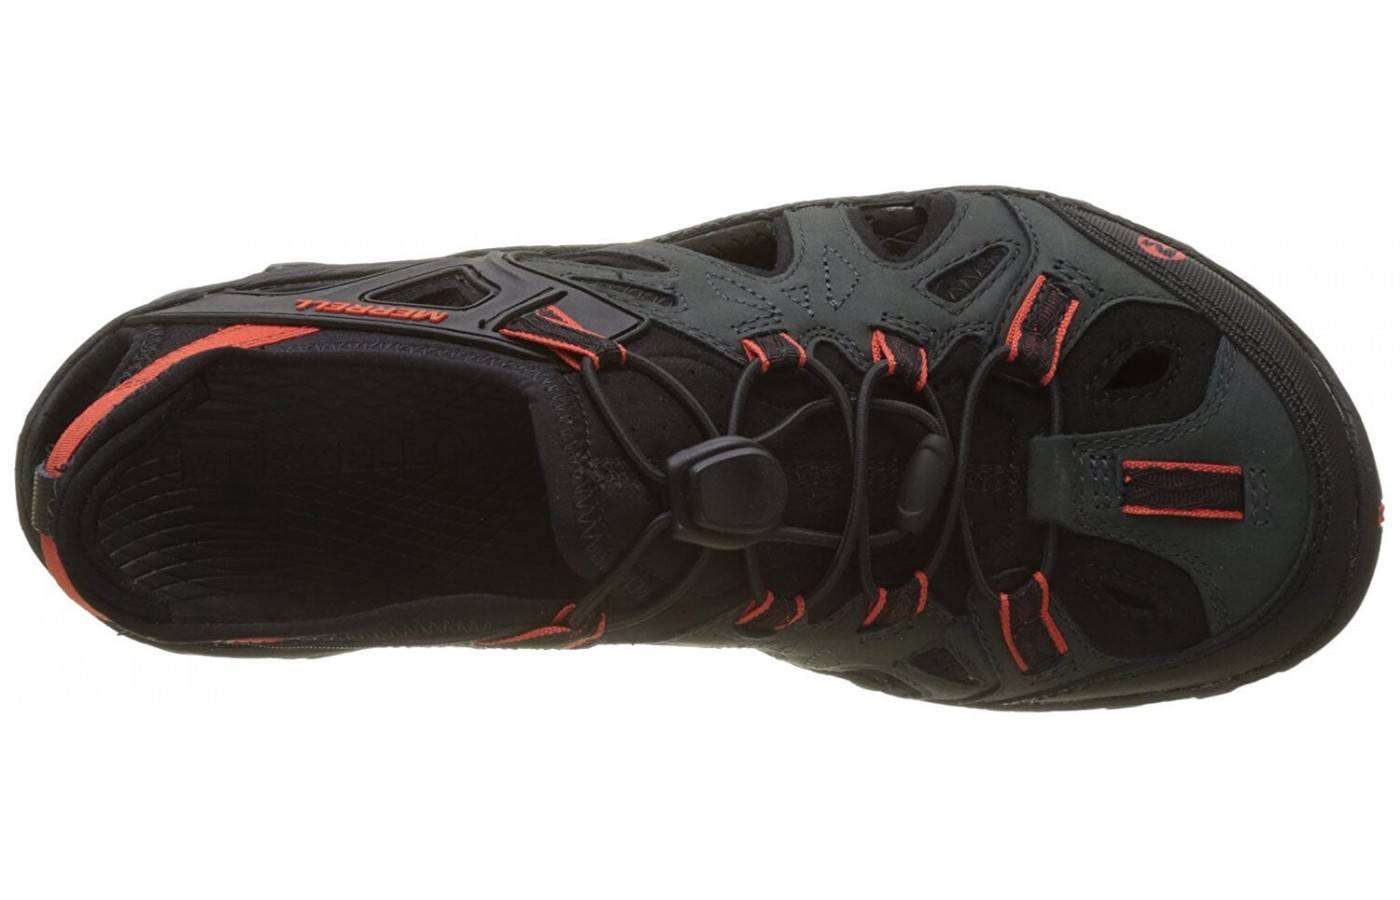 883480c0c94e ... The Merrell All Out Blaze Sieve has a quick-drying Neoprene interior to  help get ...